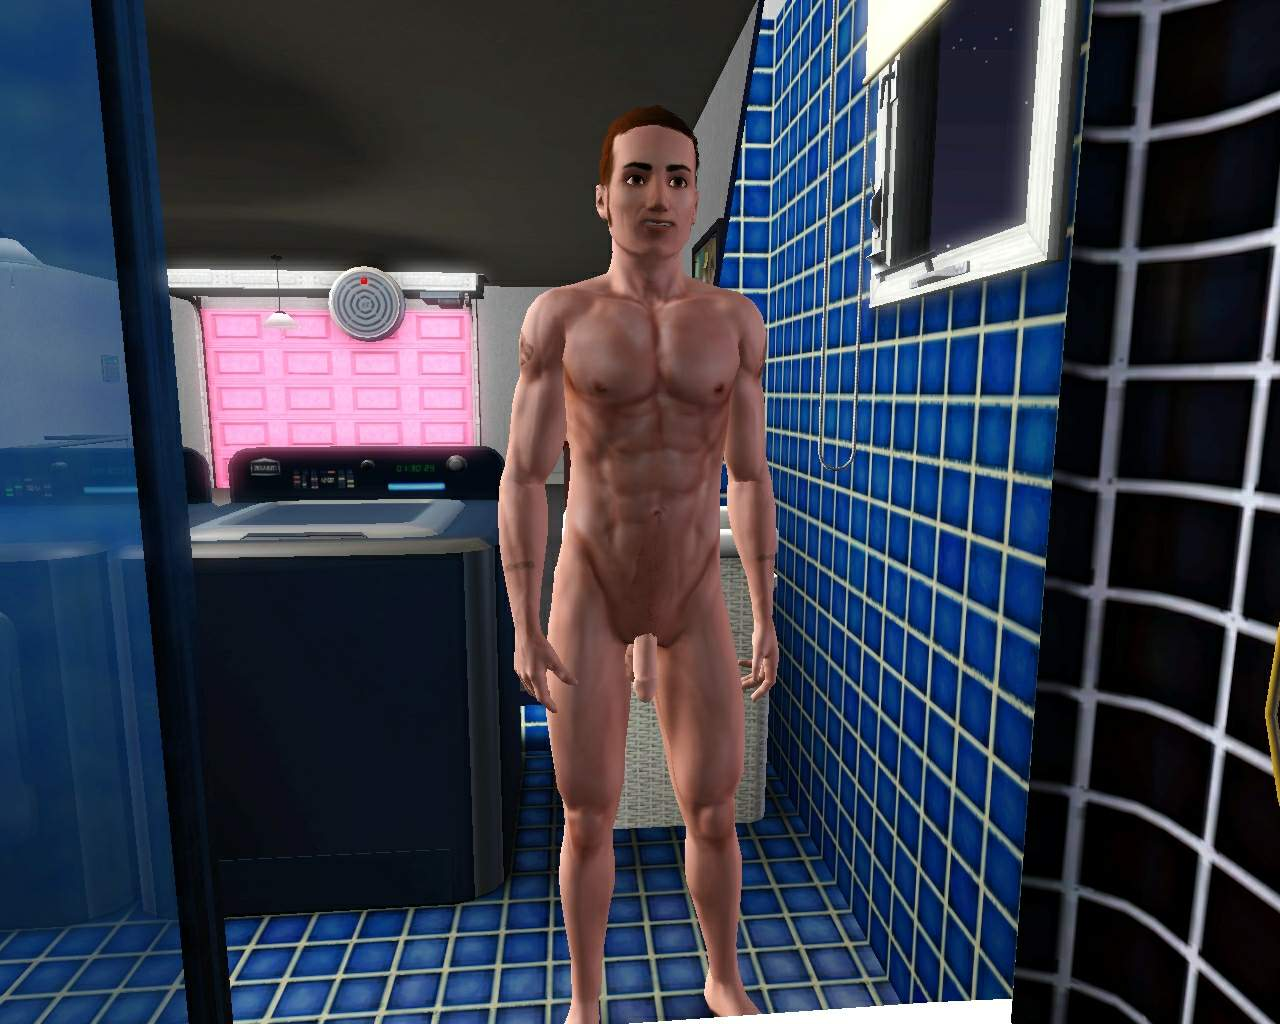 The sims 2 censor nude patch fucks photos